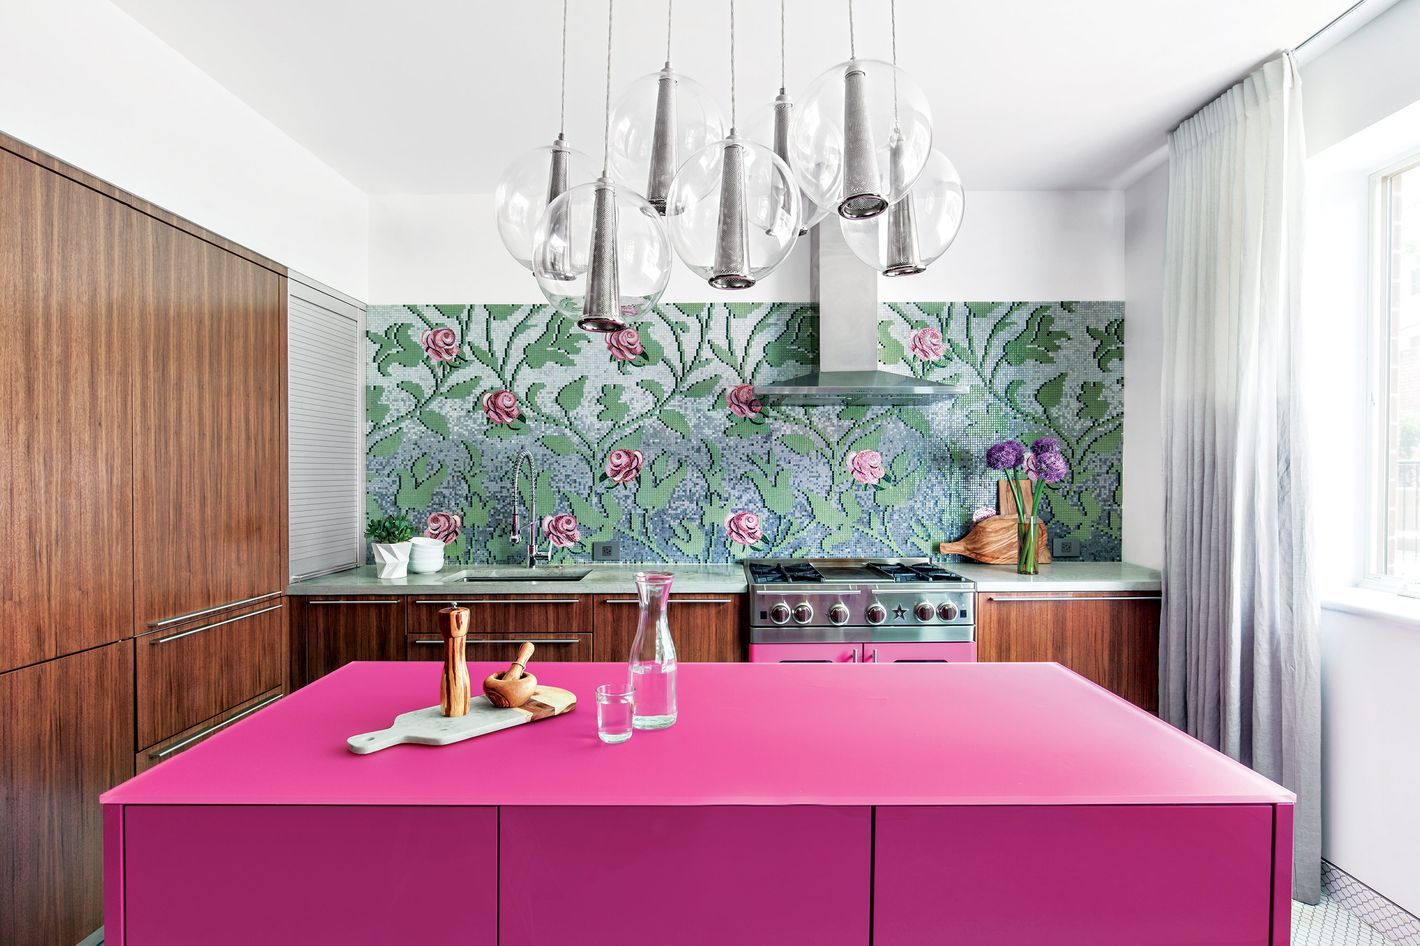 Peonies and Vines Led to a Kitchen With a Very Pink Center